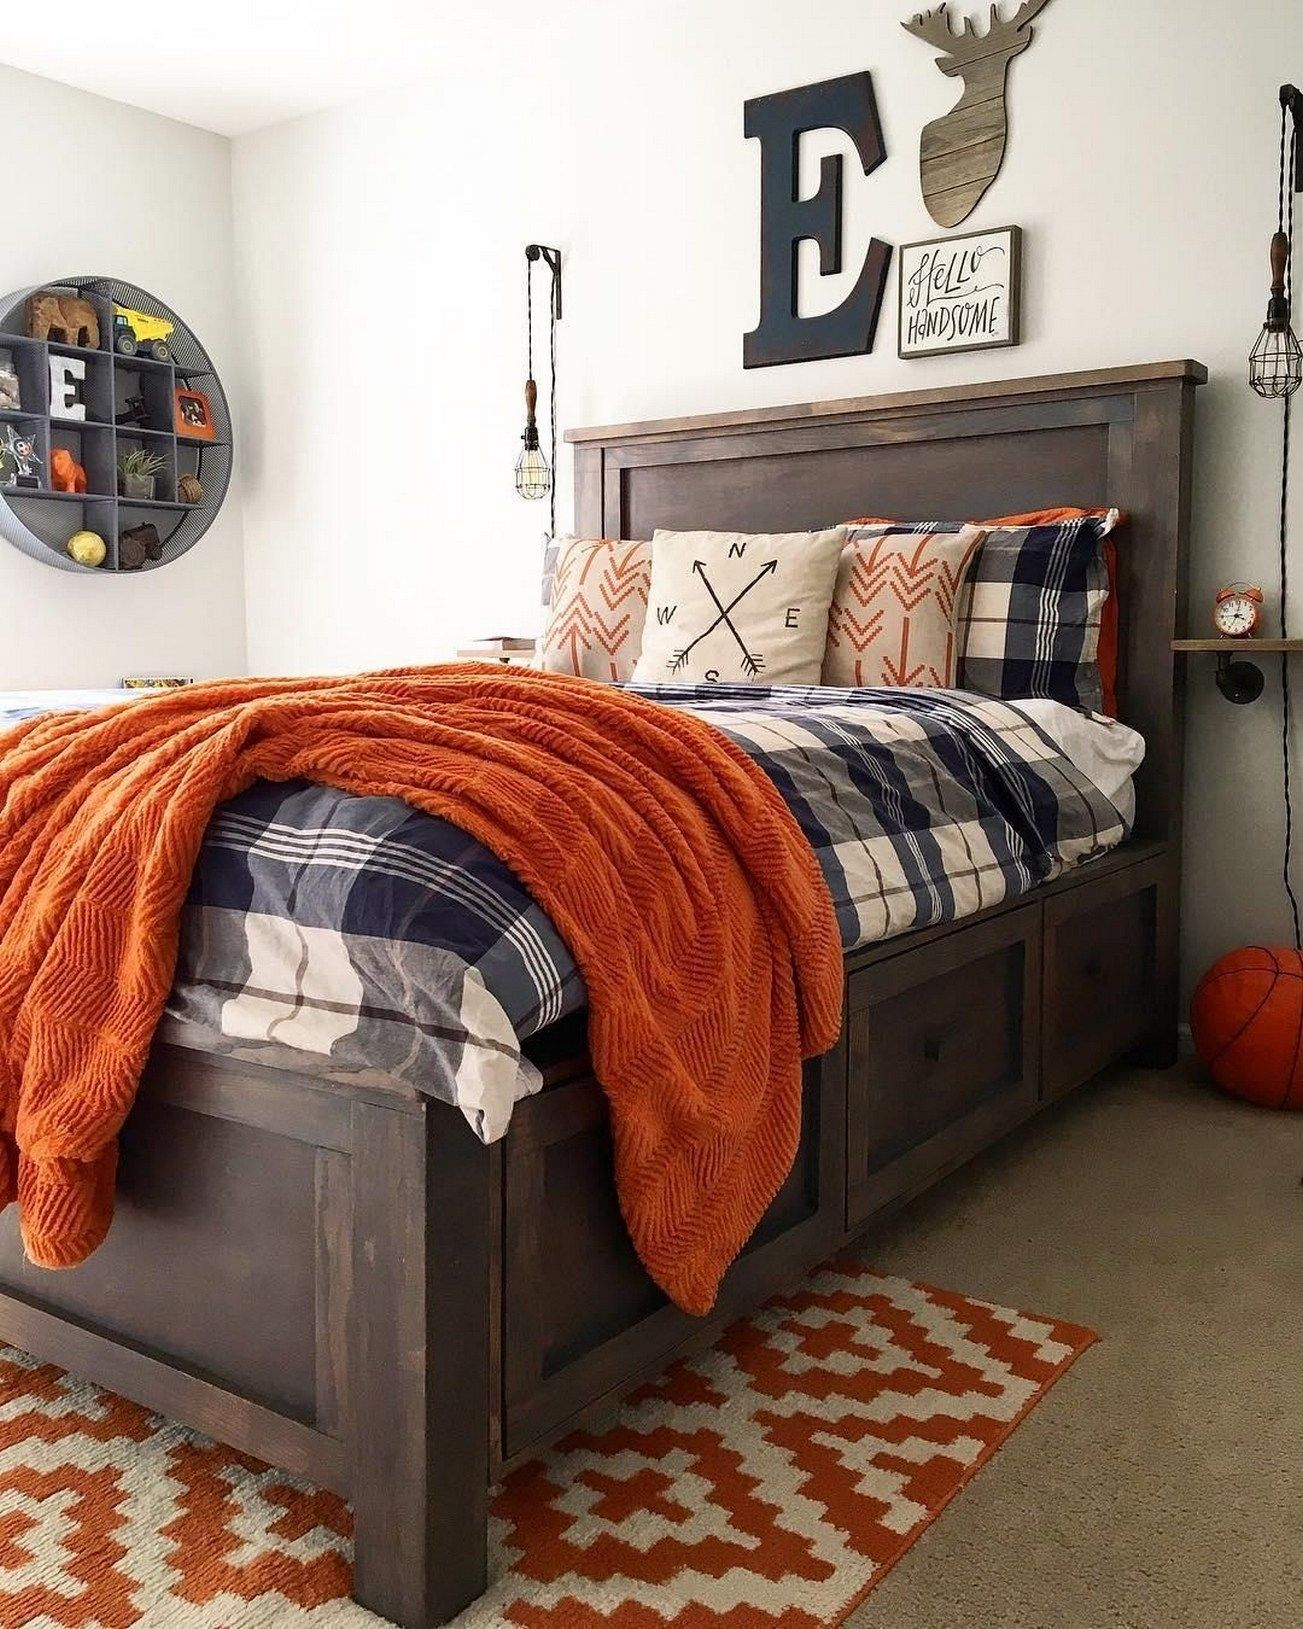 60+ Amazing Cool Bedroom Ideas For Teenage Guys Small ...